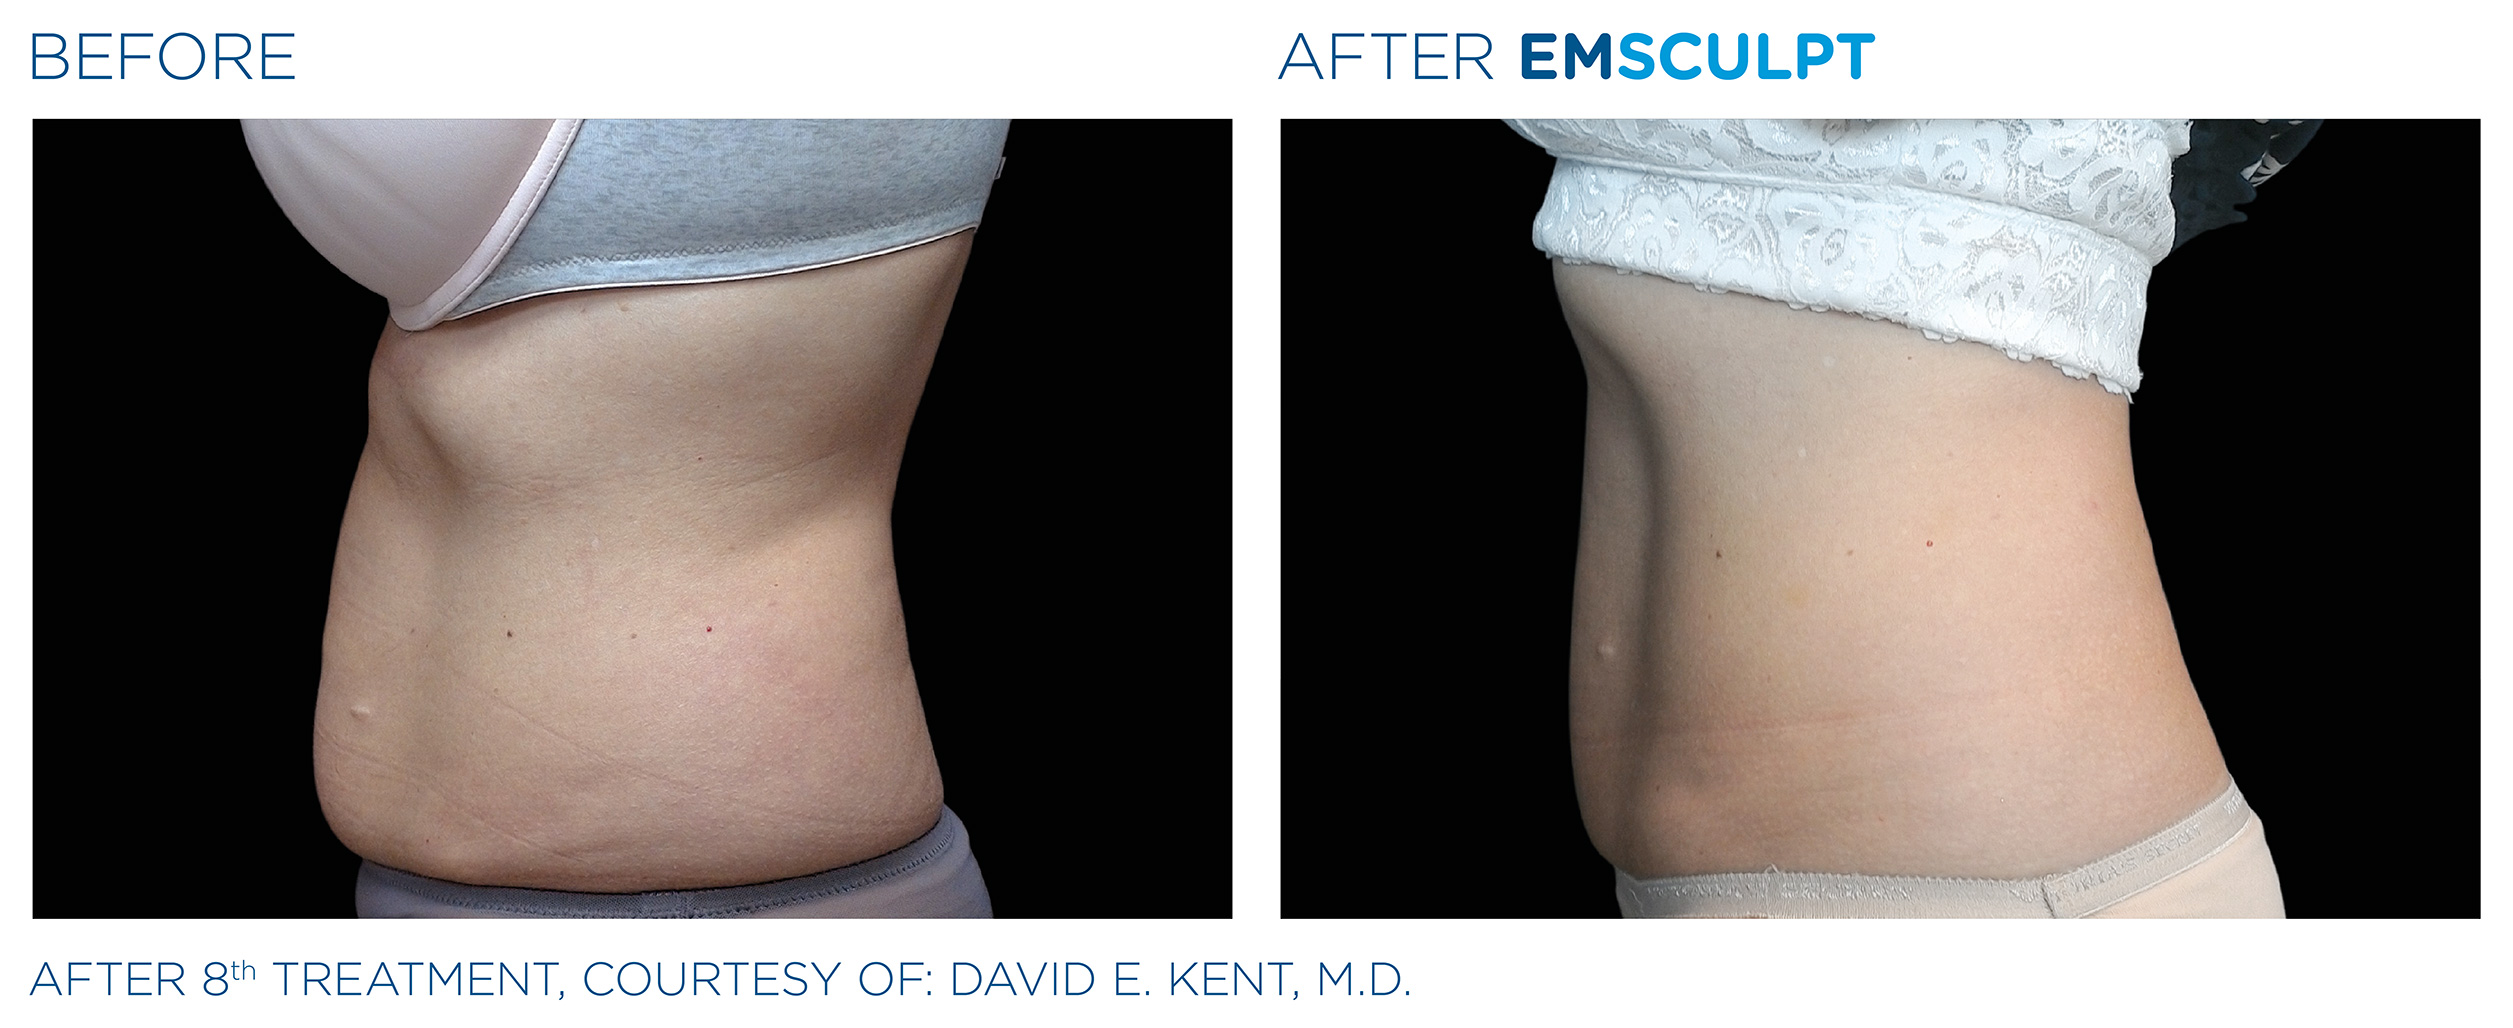 EMSCULPT Before & After Photos | Abdomen 1